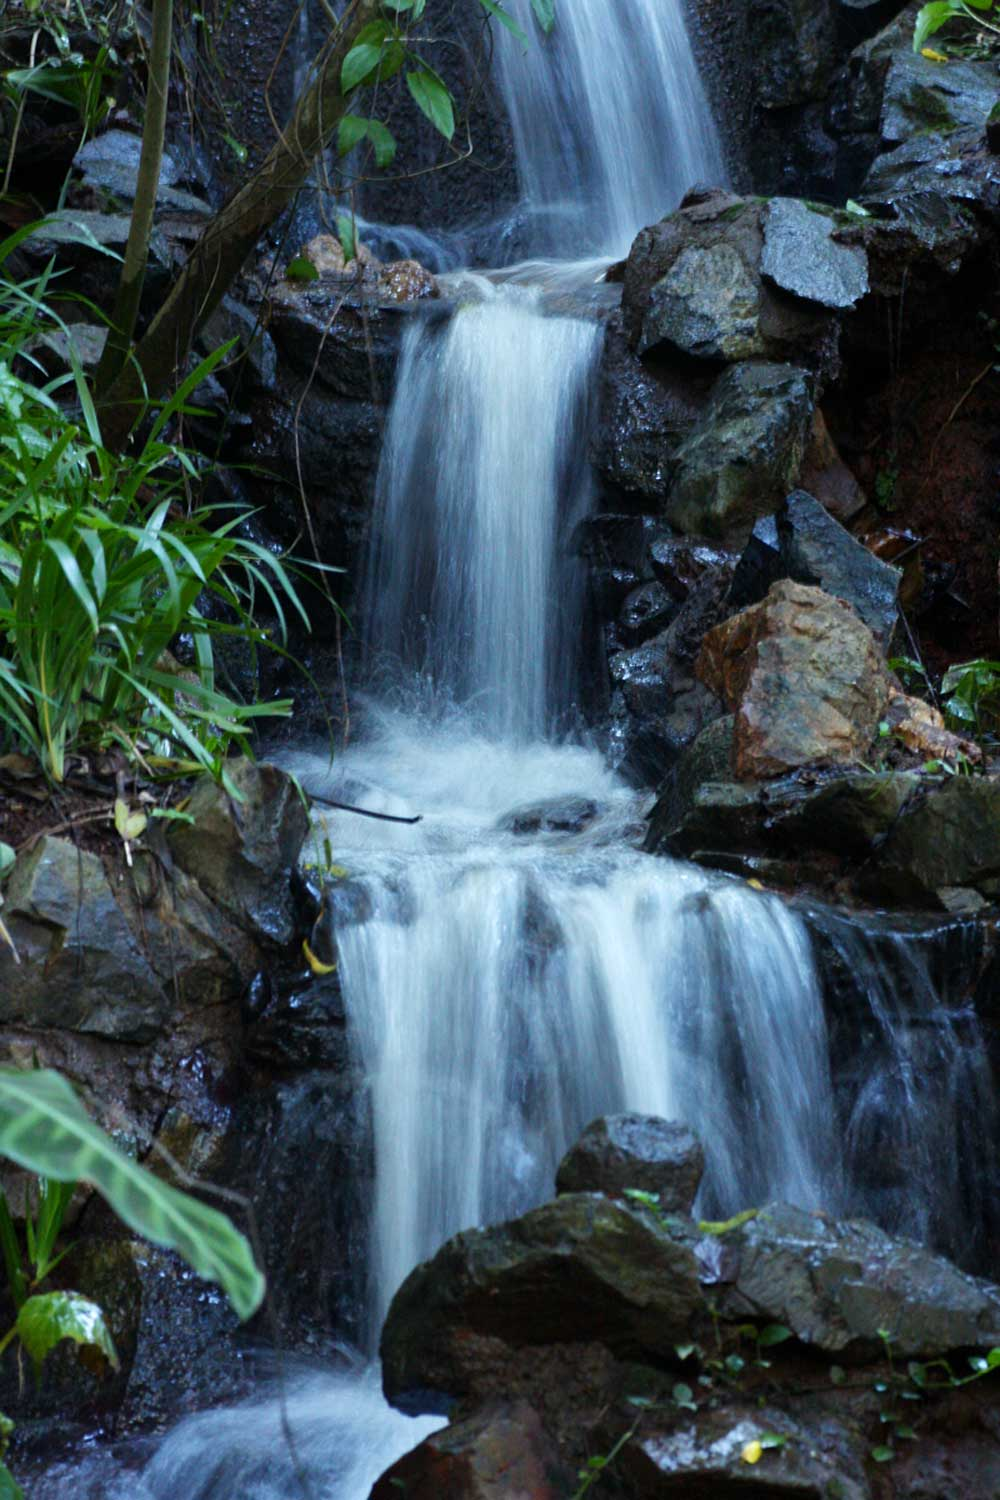 Small waterfall in the forest part of La Rochelle Botanic Garden